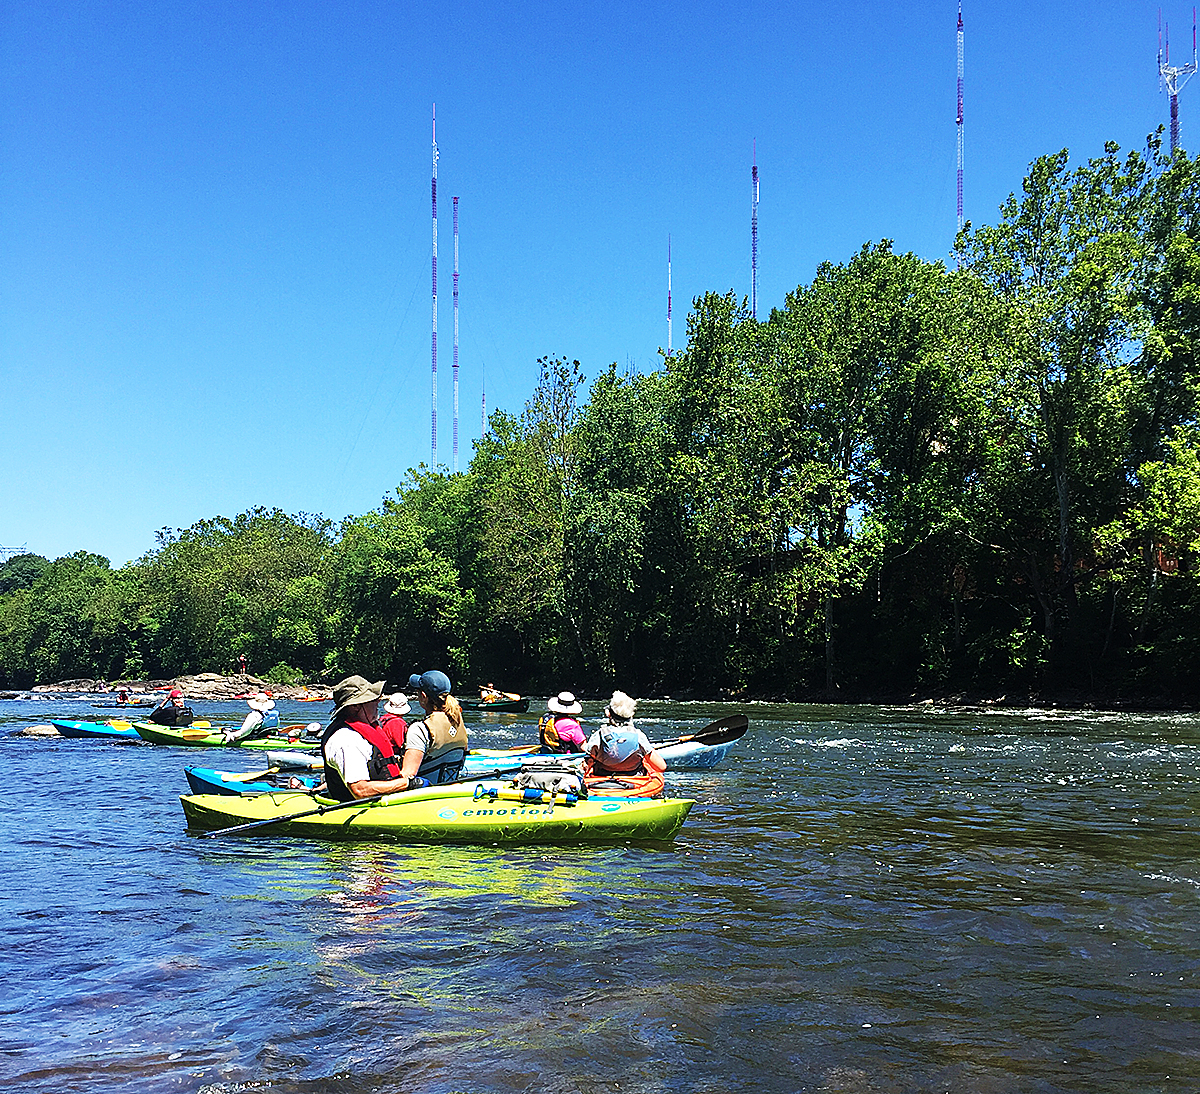 Schuylkill River boaters paddle the waters just below Flat Rock Dam. Issues with water quality in Rio de Janeiro, home of the 2016 Summer Olympics, have local water sport enthusiasts thinking about the value of clean water.